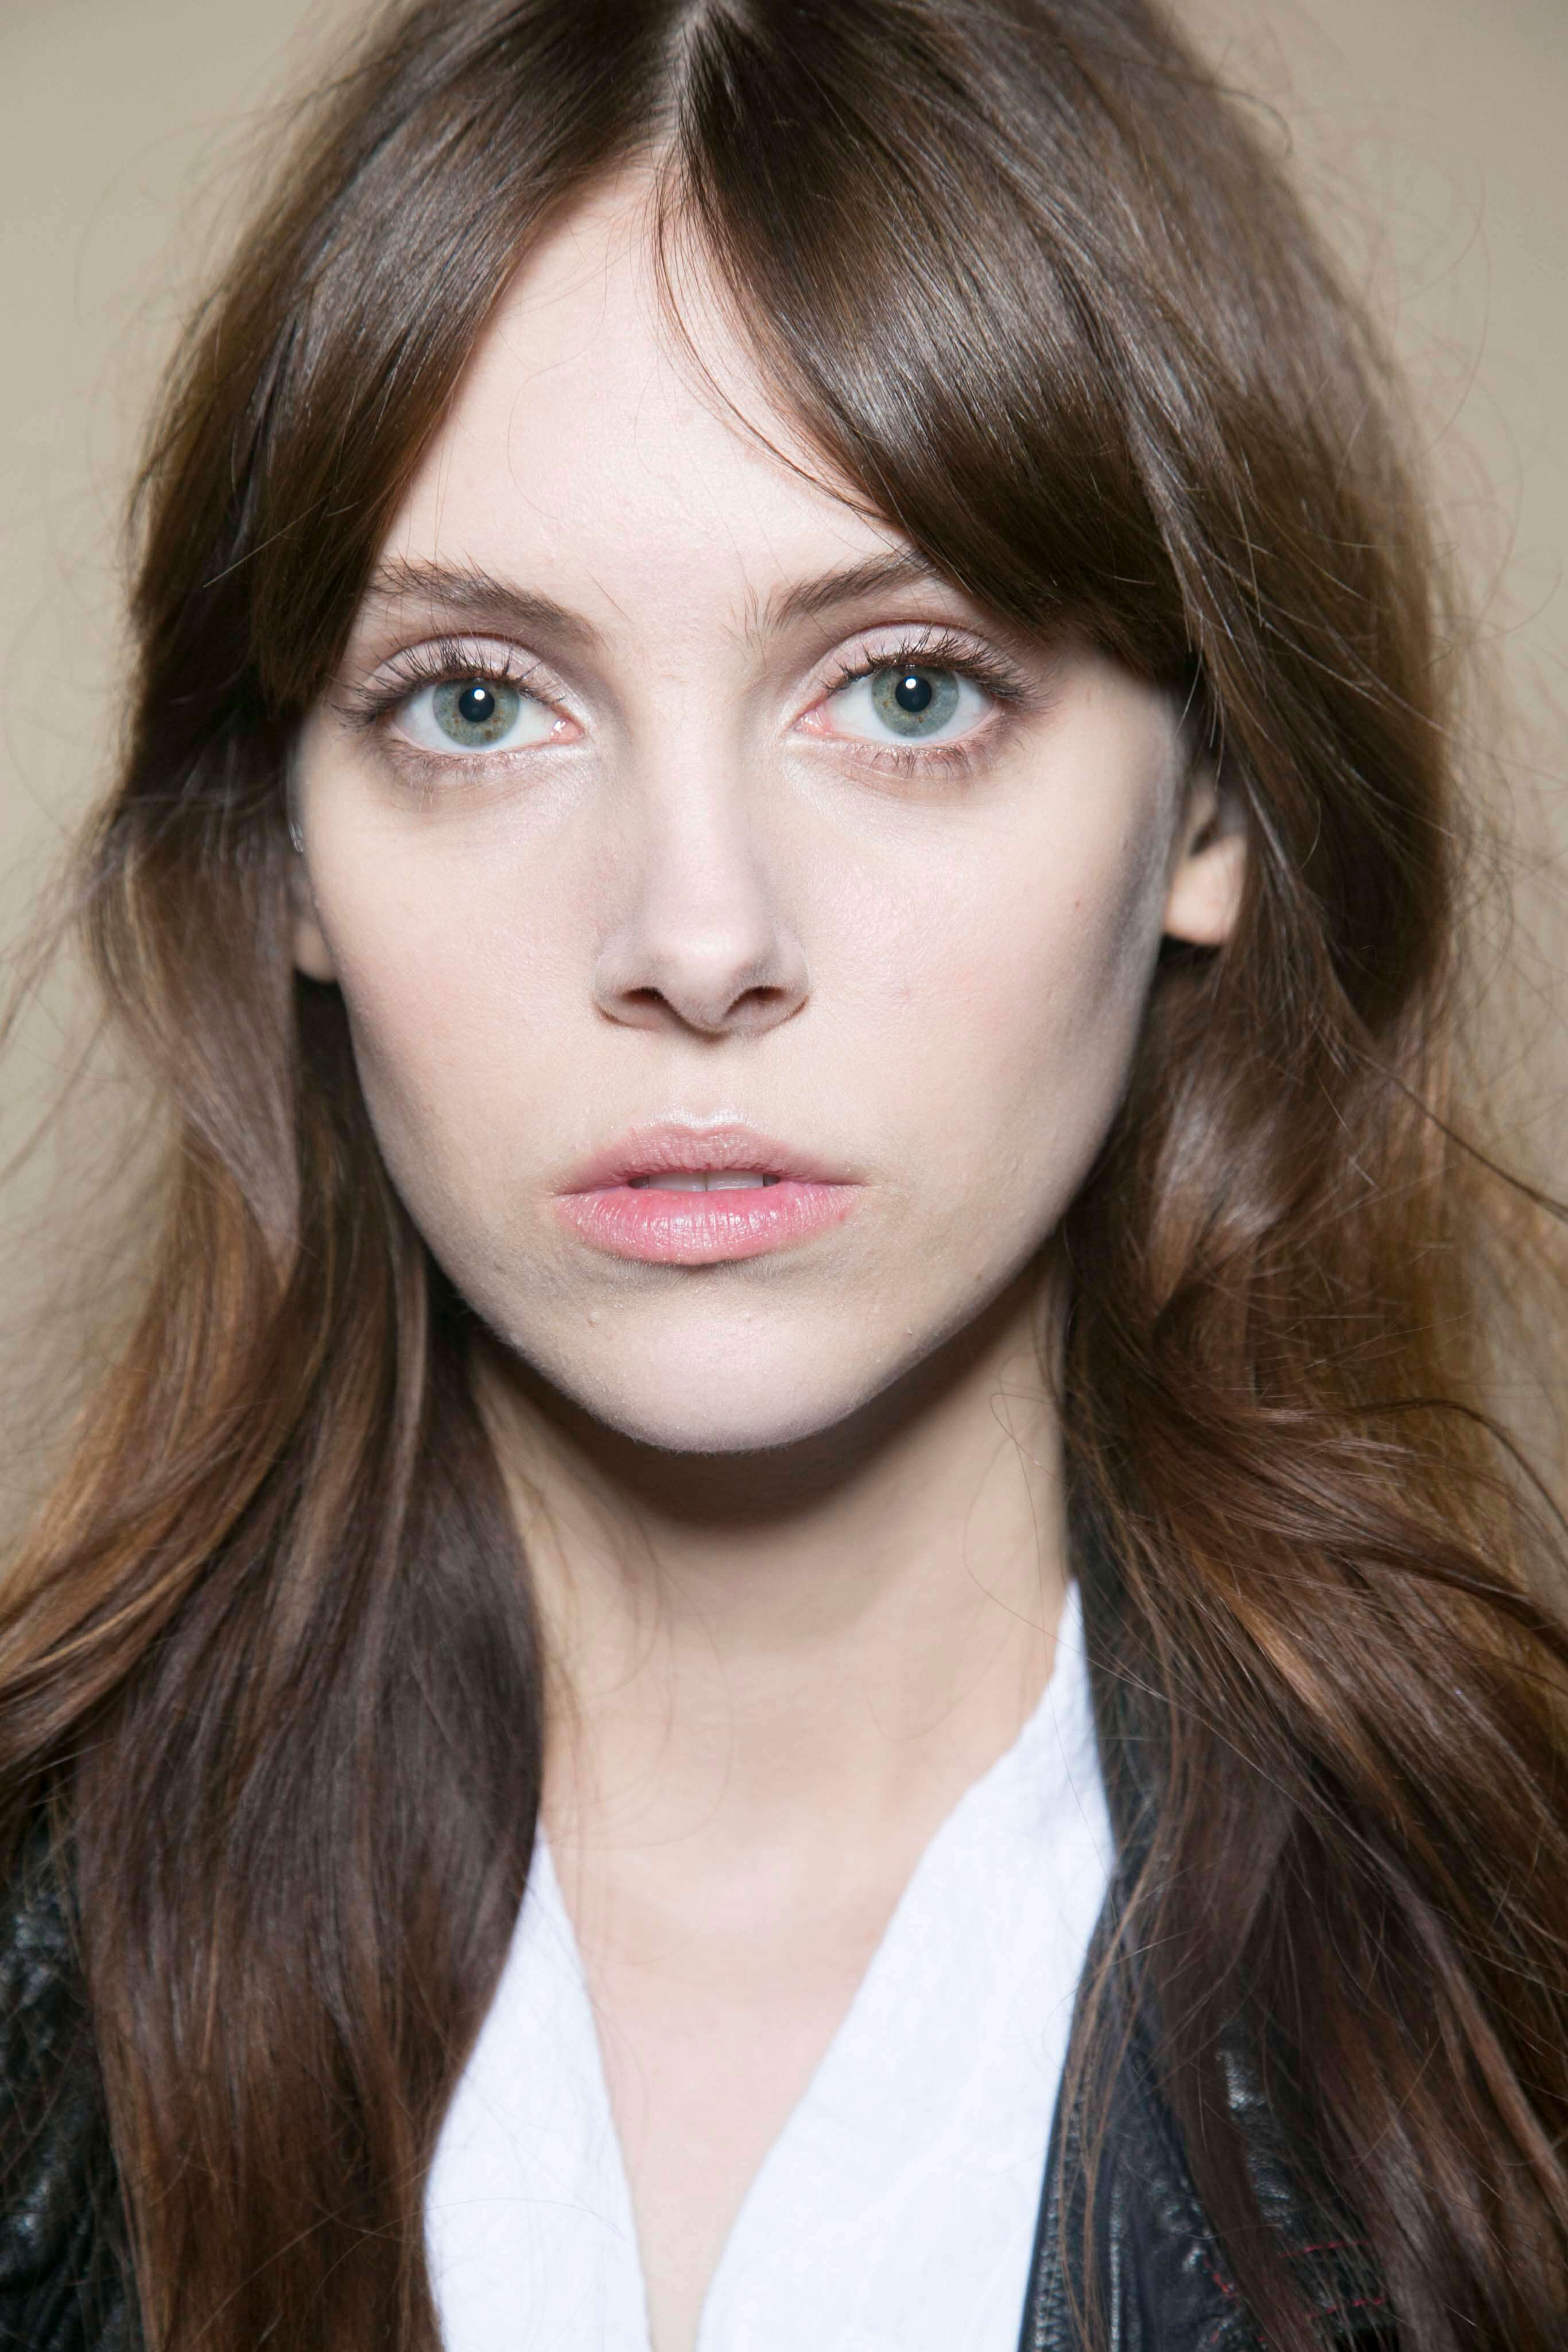 5 Trendy haircuts to try if you have an oval shaped face